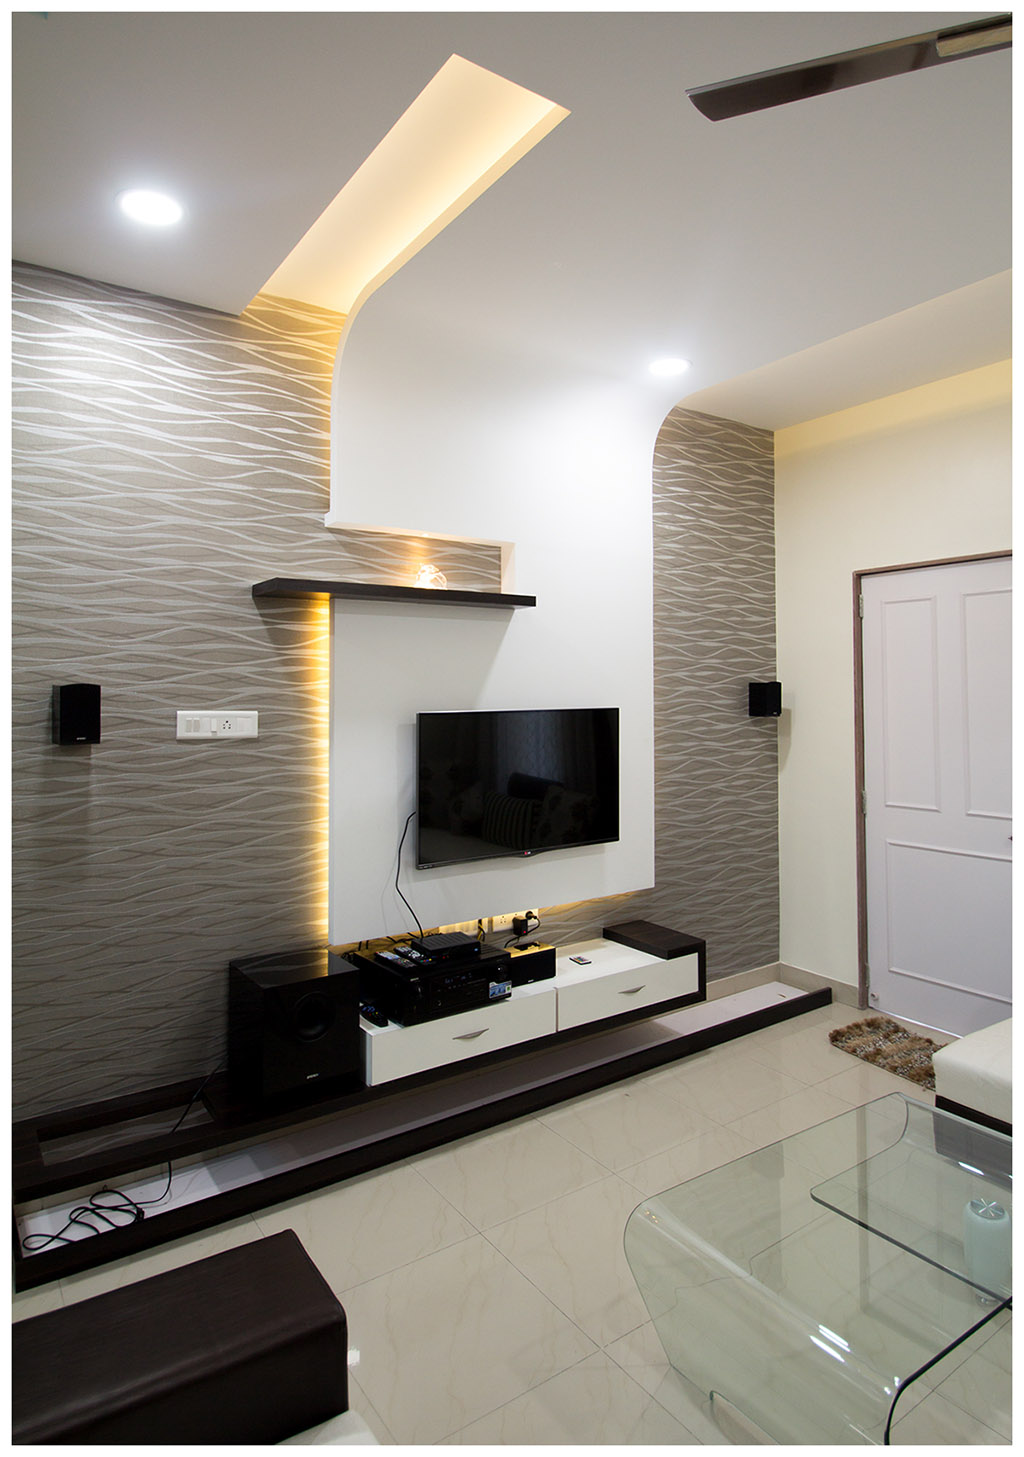 Interior Designs Images Projects Archilab Design Solutions